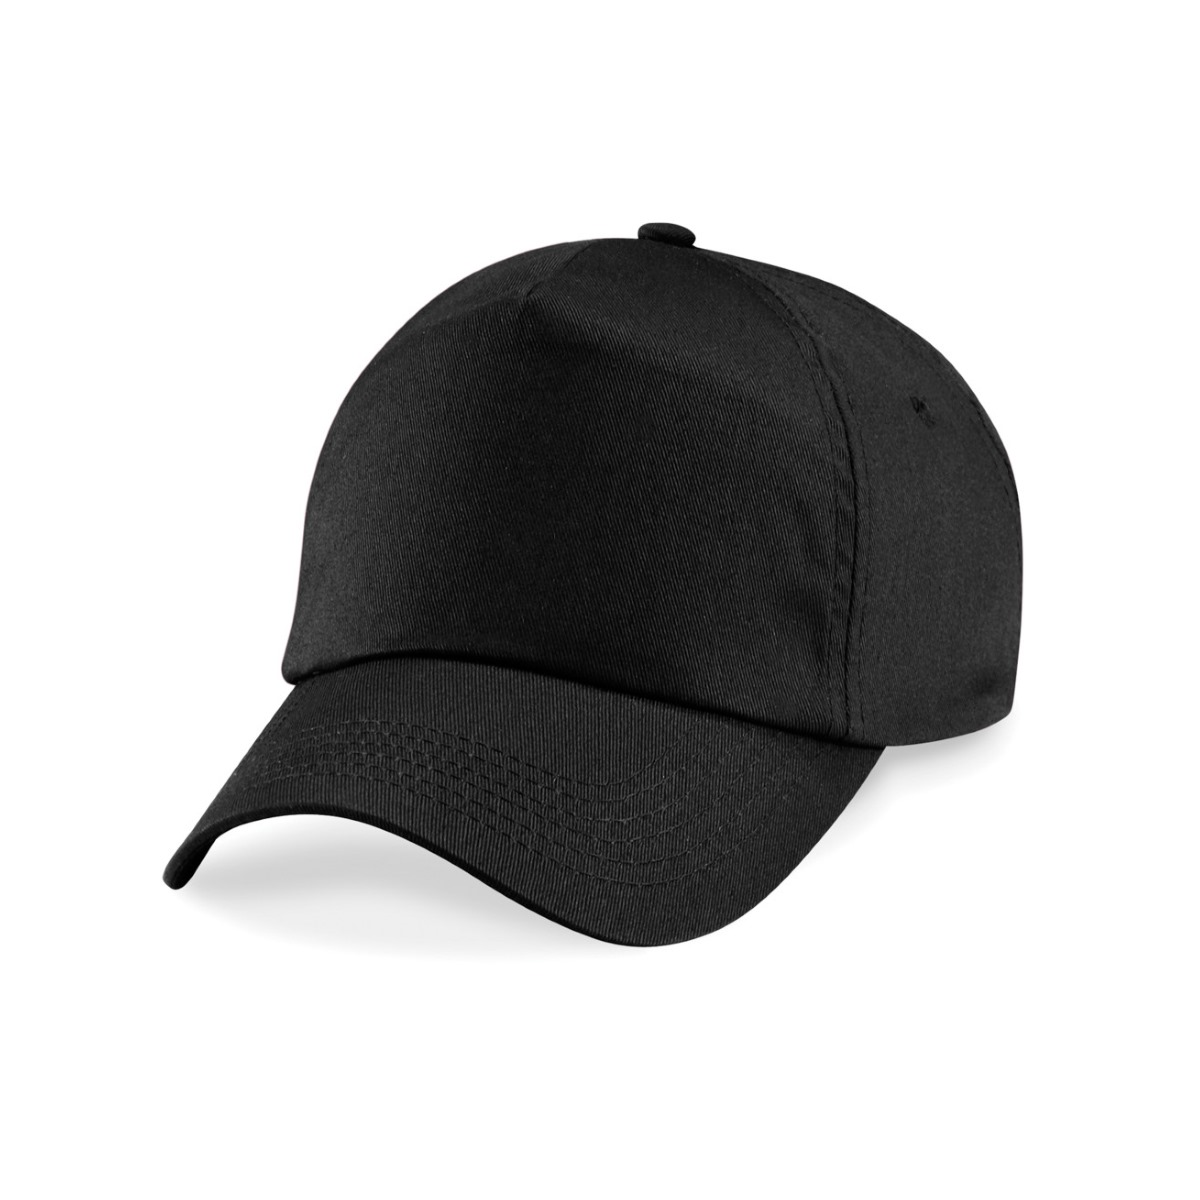 Beechfield Original 5 Panel Baseball Cap